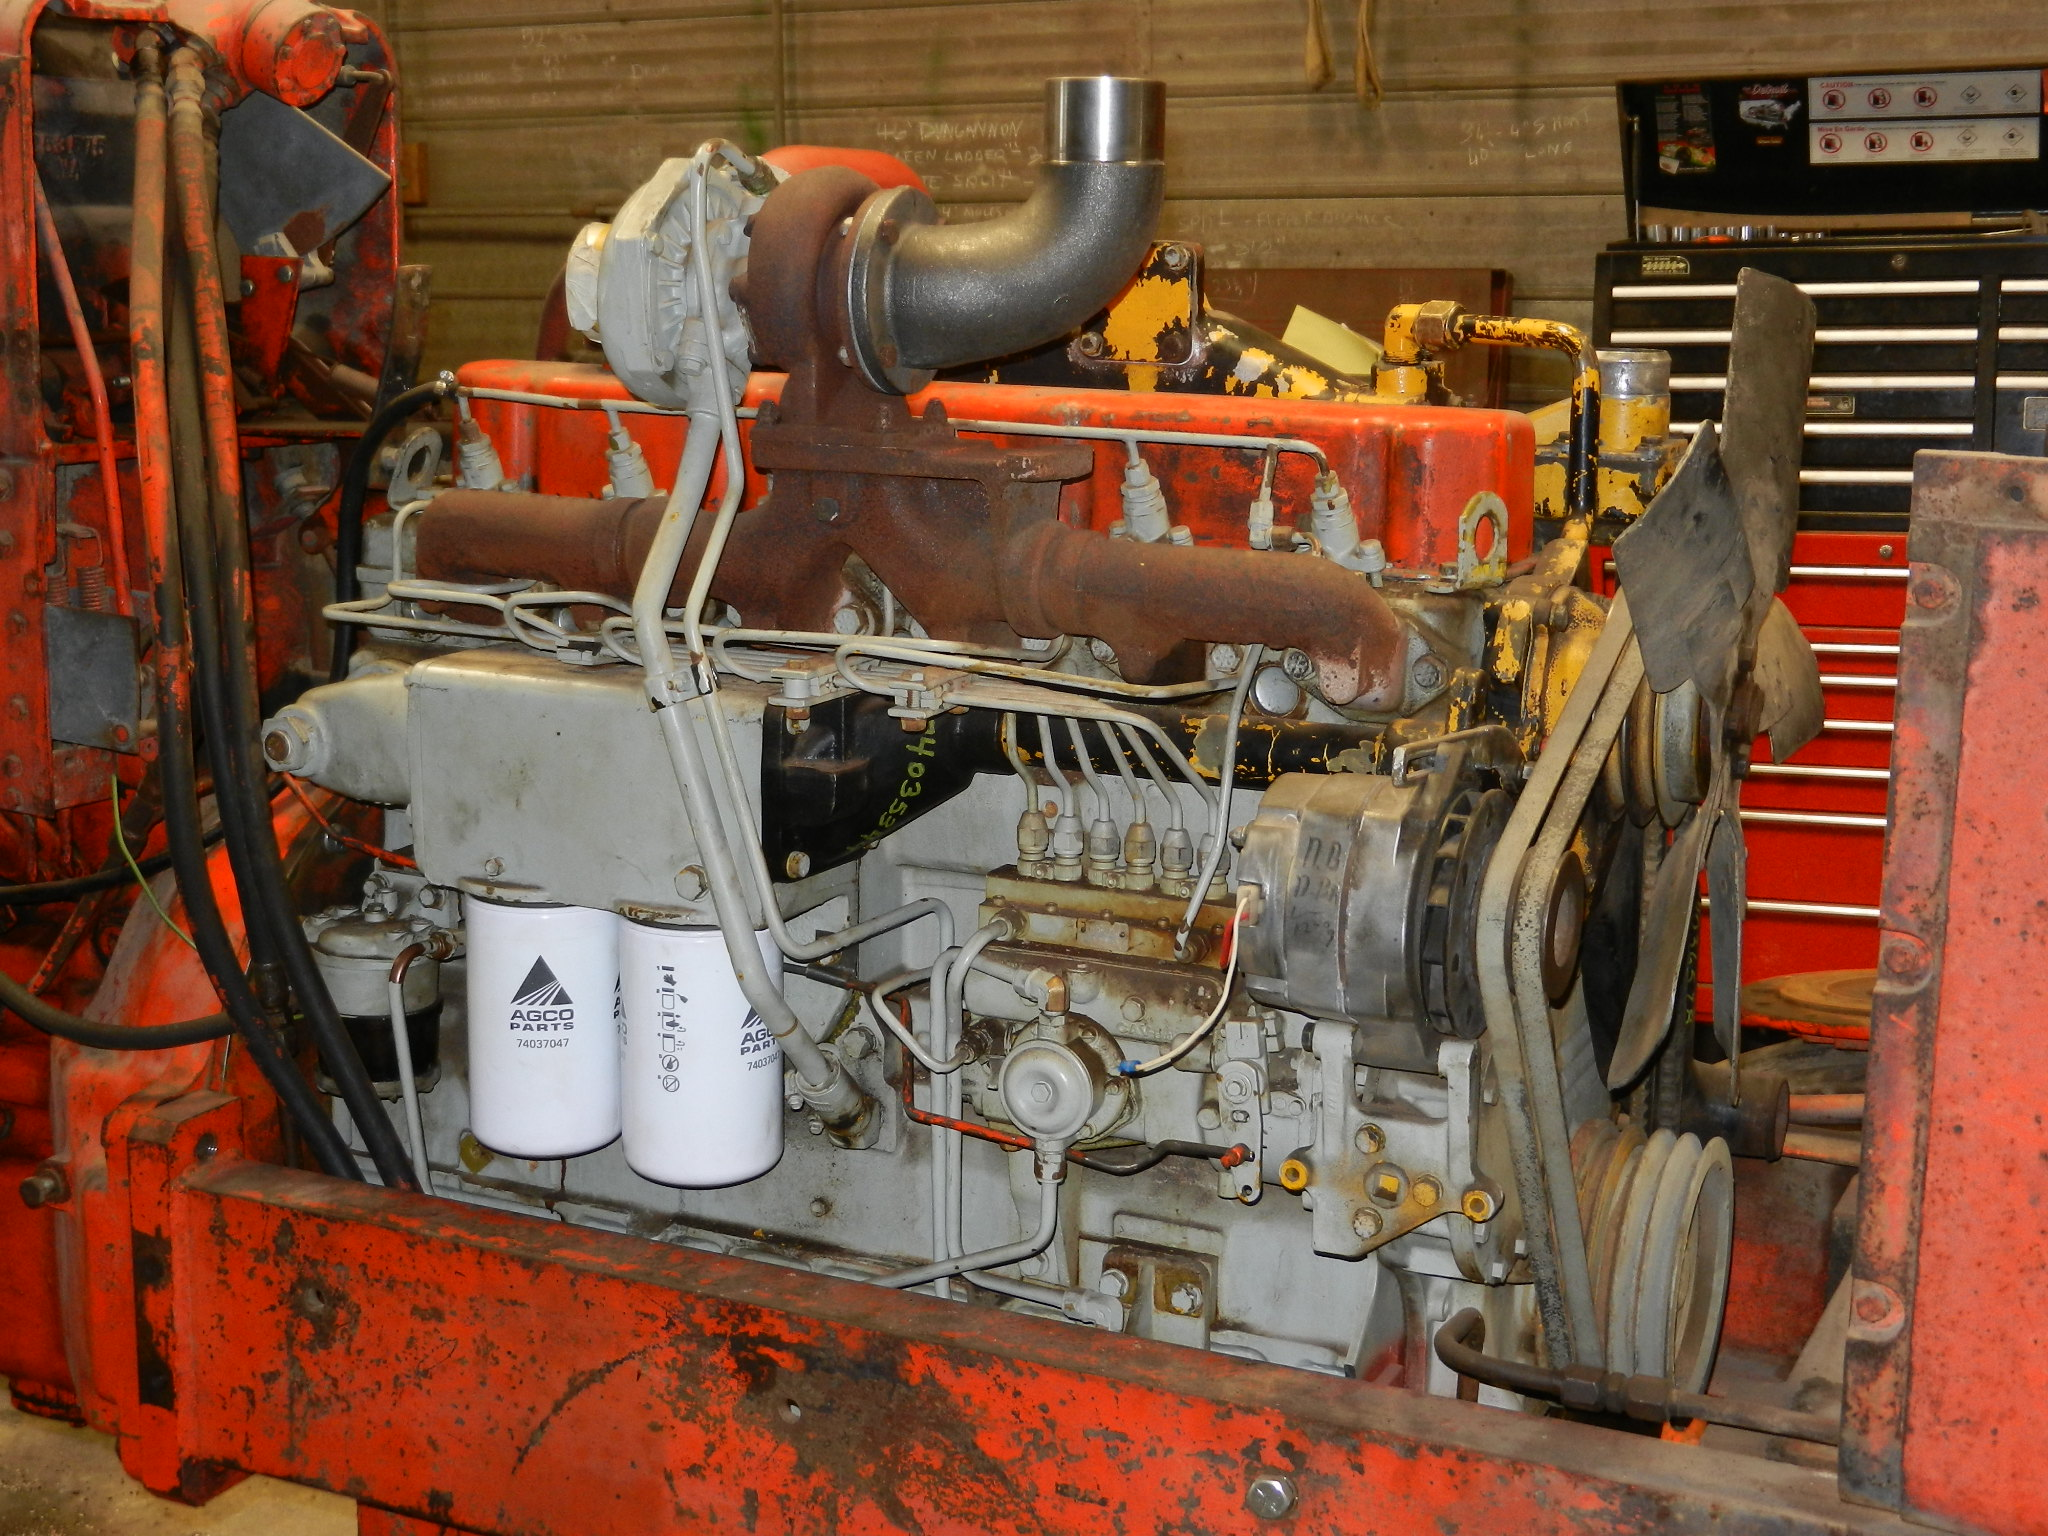 and speaking of 7010 fuel injection pumps allischalmers forum rh allischalmers com Allis Chalmers 426 Engine Specs Allis Chalmers WD45 Gas Engine